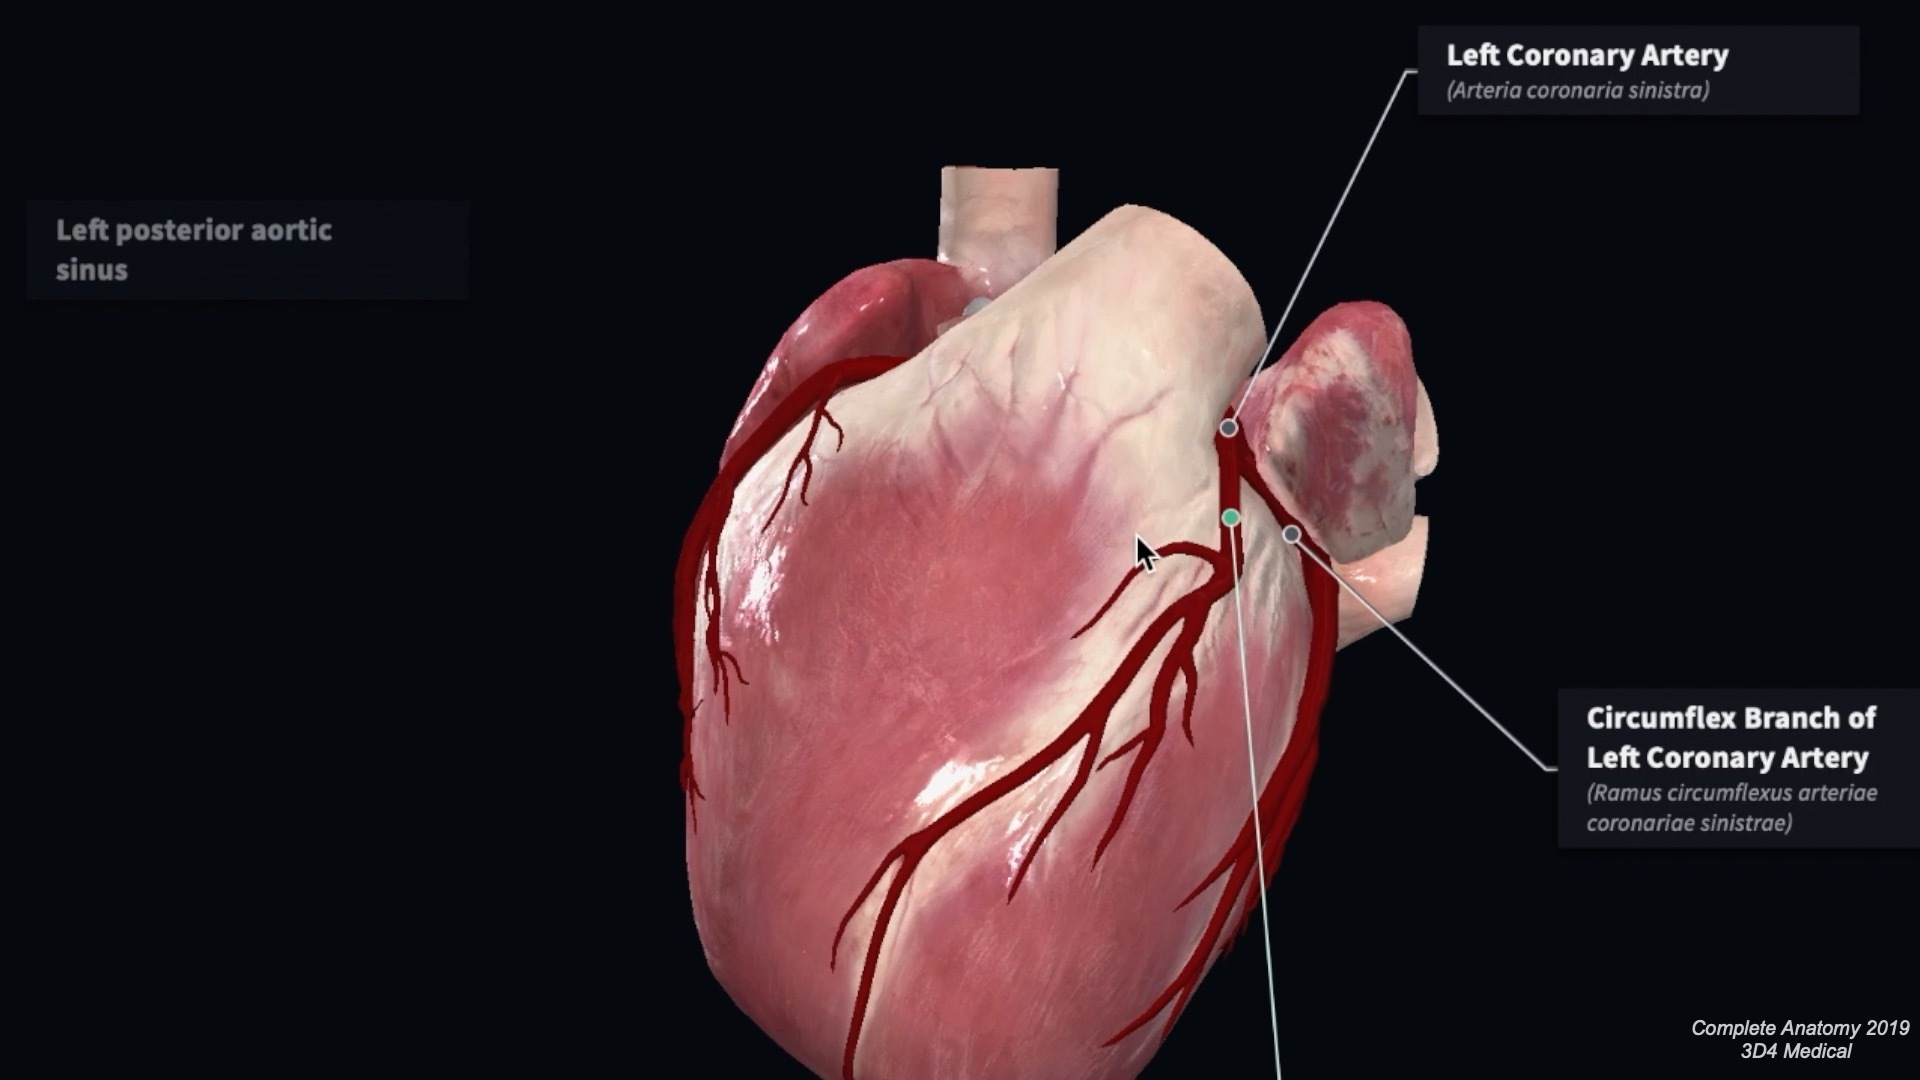 what are the major branches of the left coronary artery